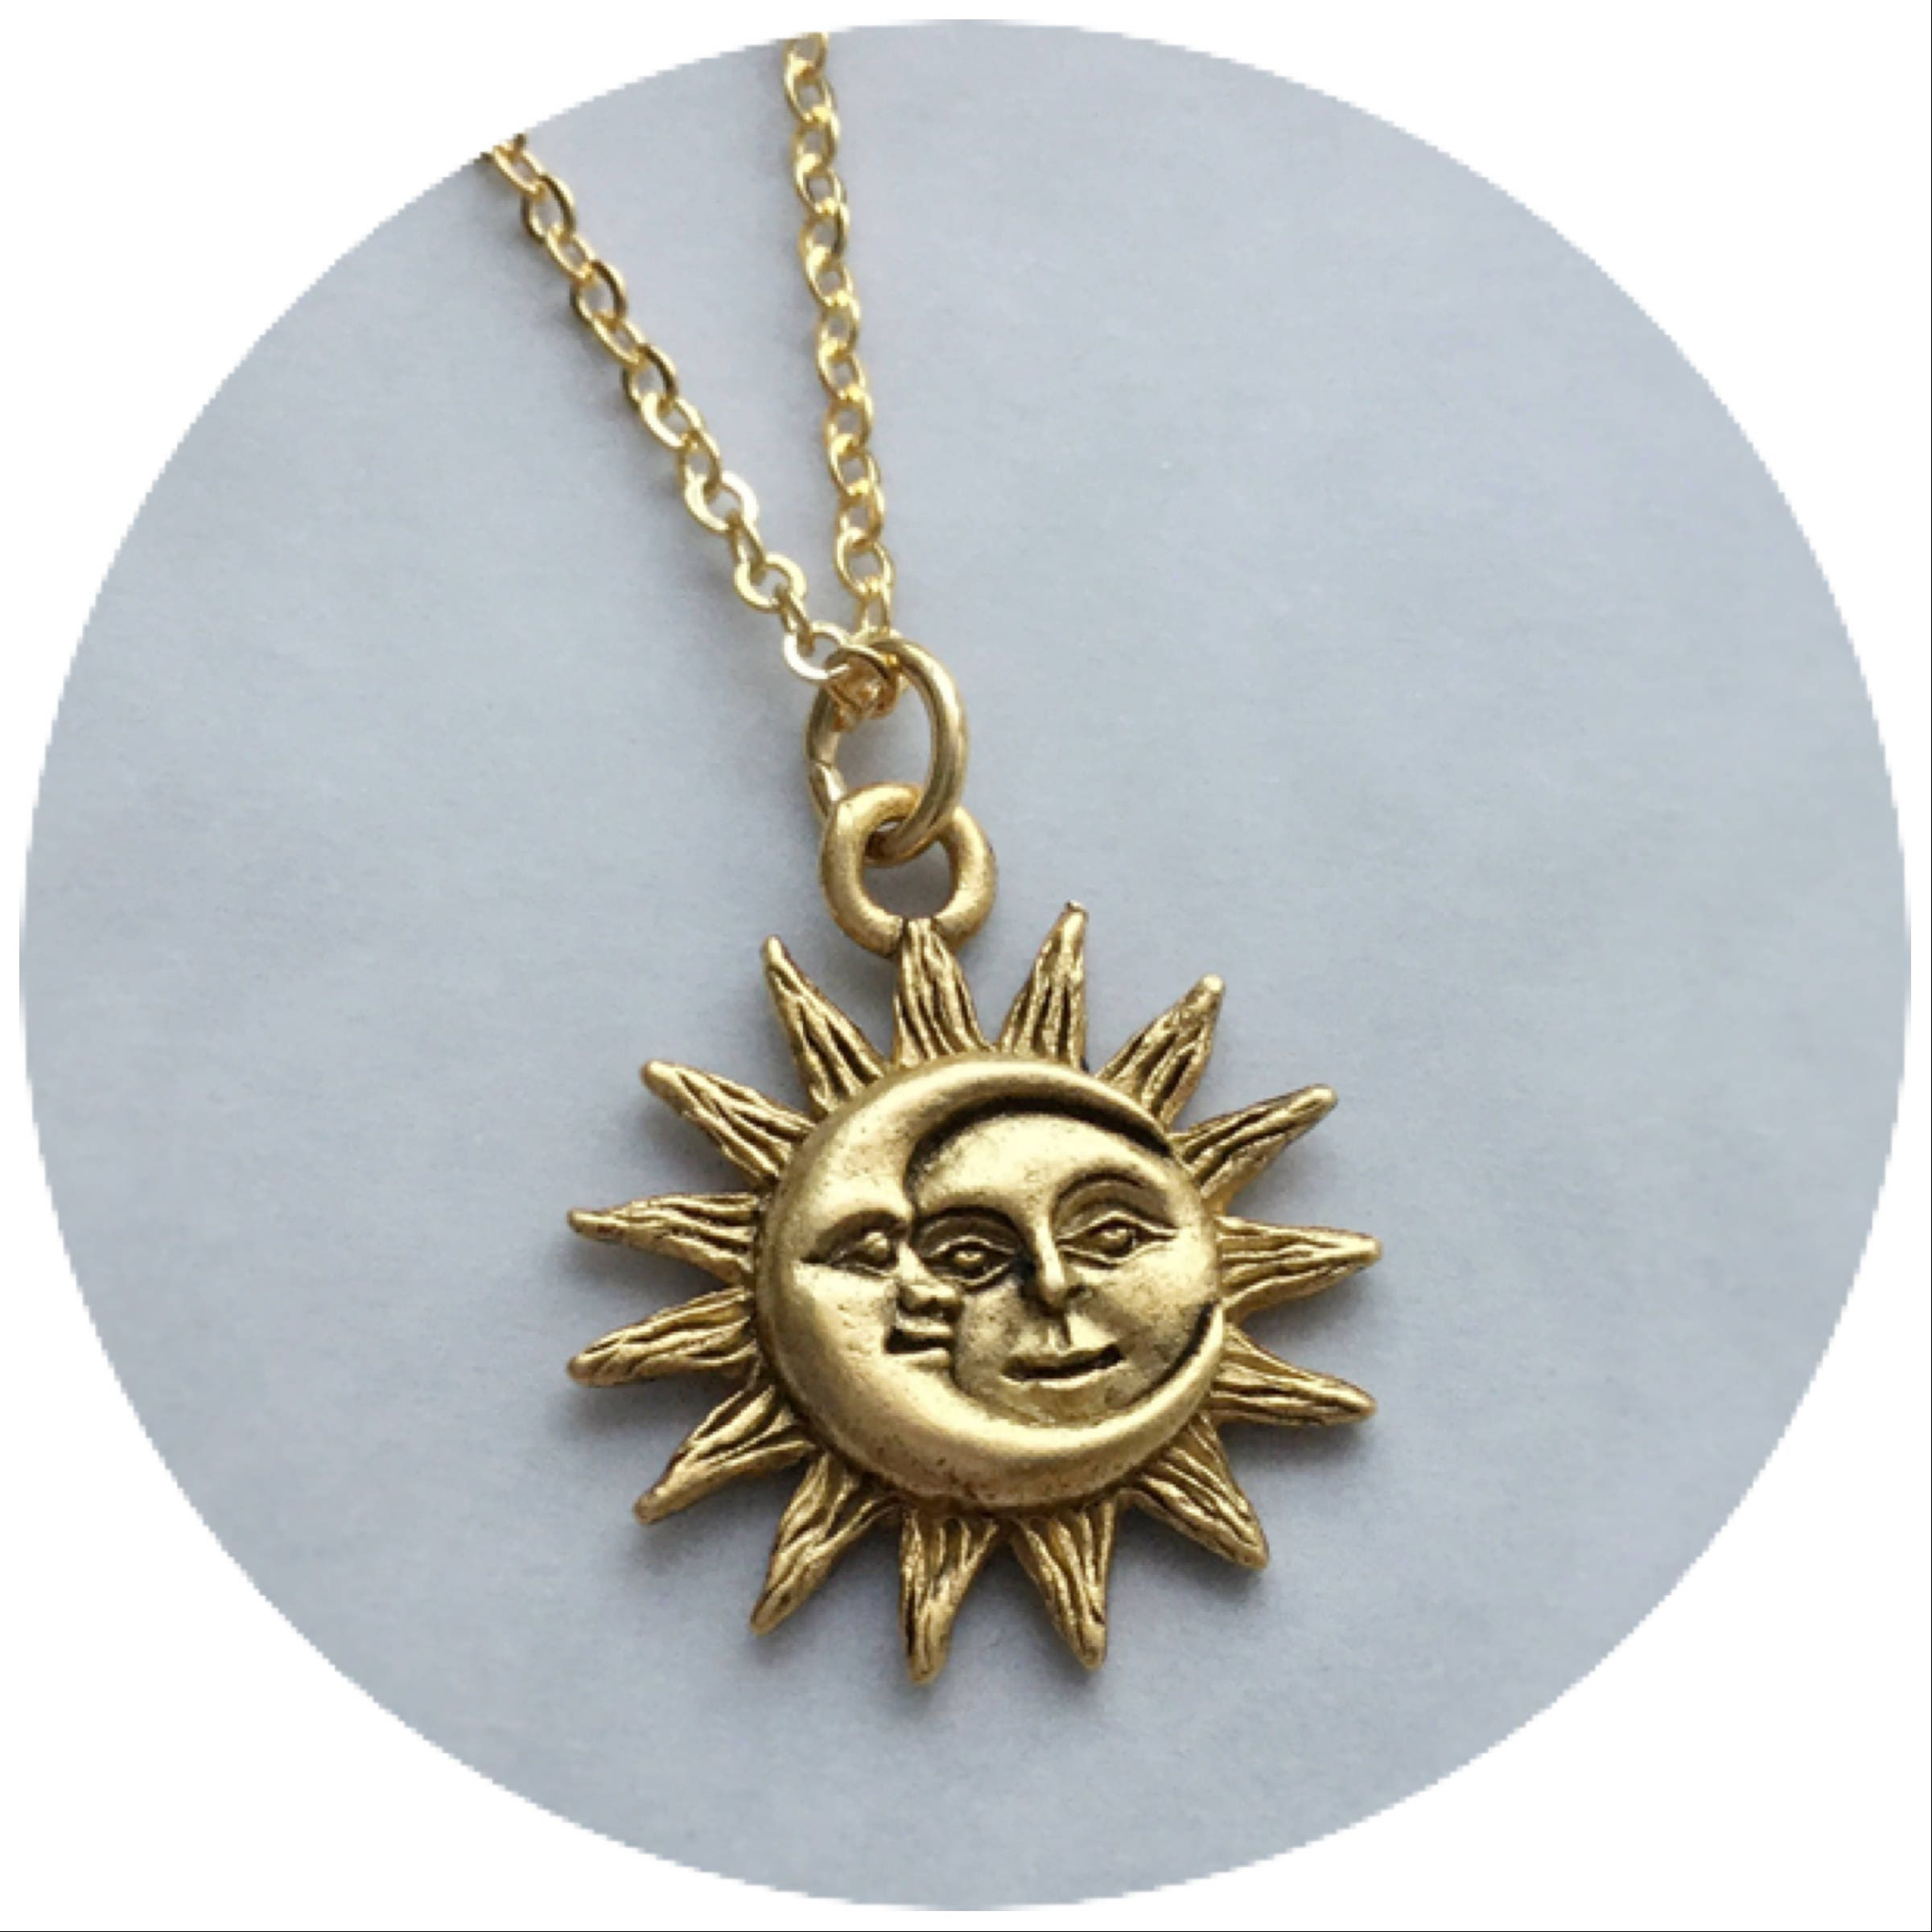 moon to il enem free necklace celtic sun silver and sterling length calculate listing shipping fullxfull